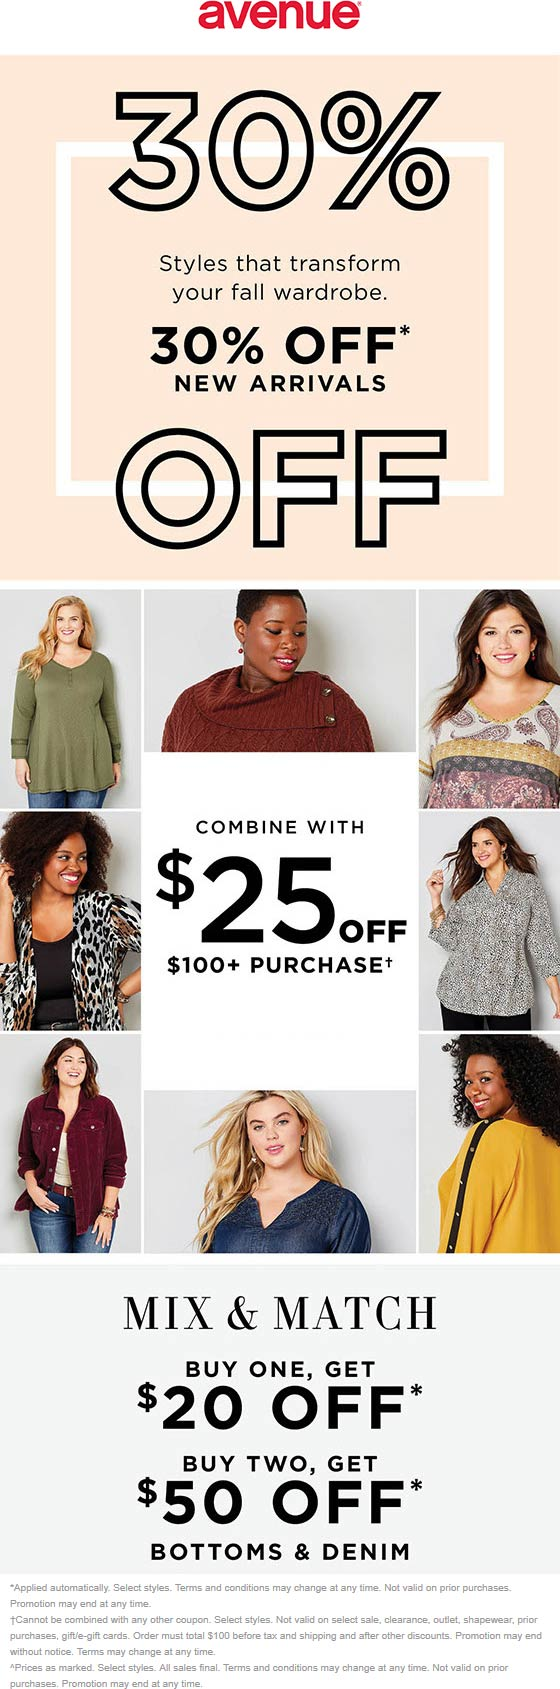 Avenue Coupon November 2019 30% off new styles + another $25 off $100 online at Avenue via promo code FALL25